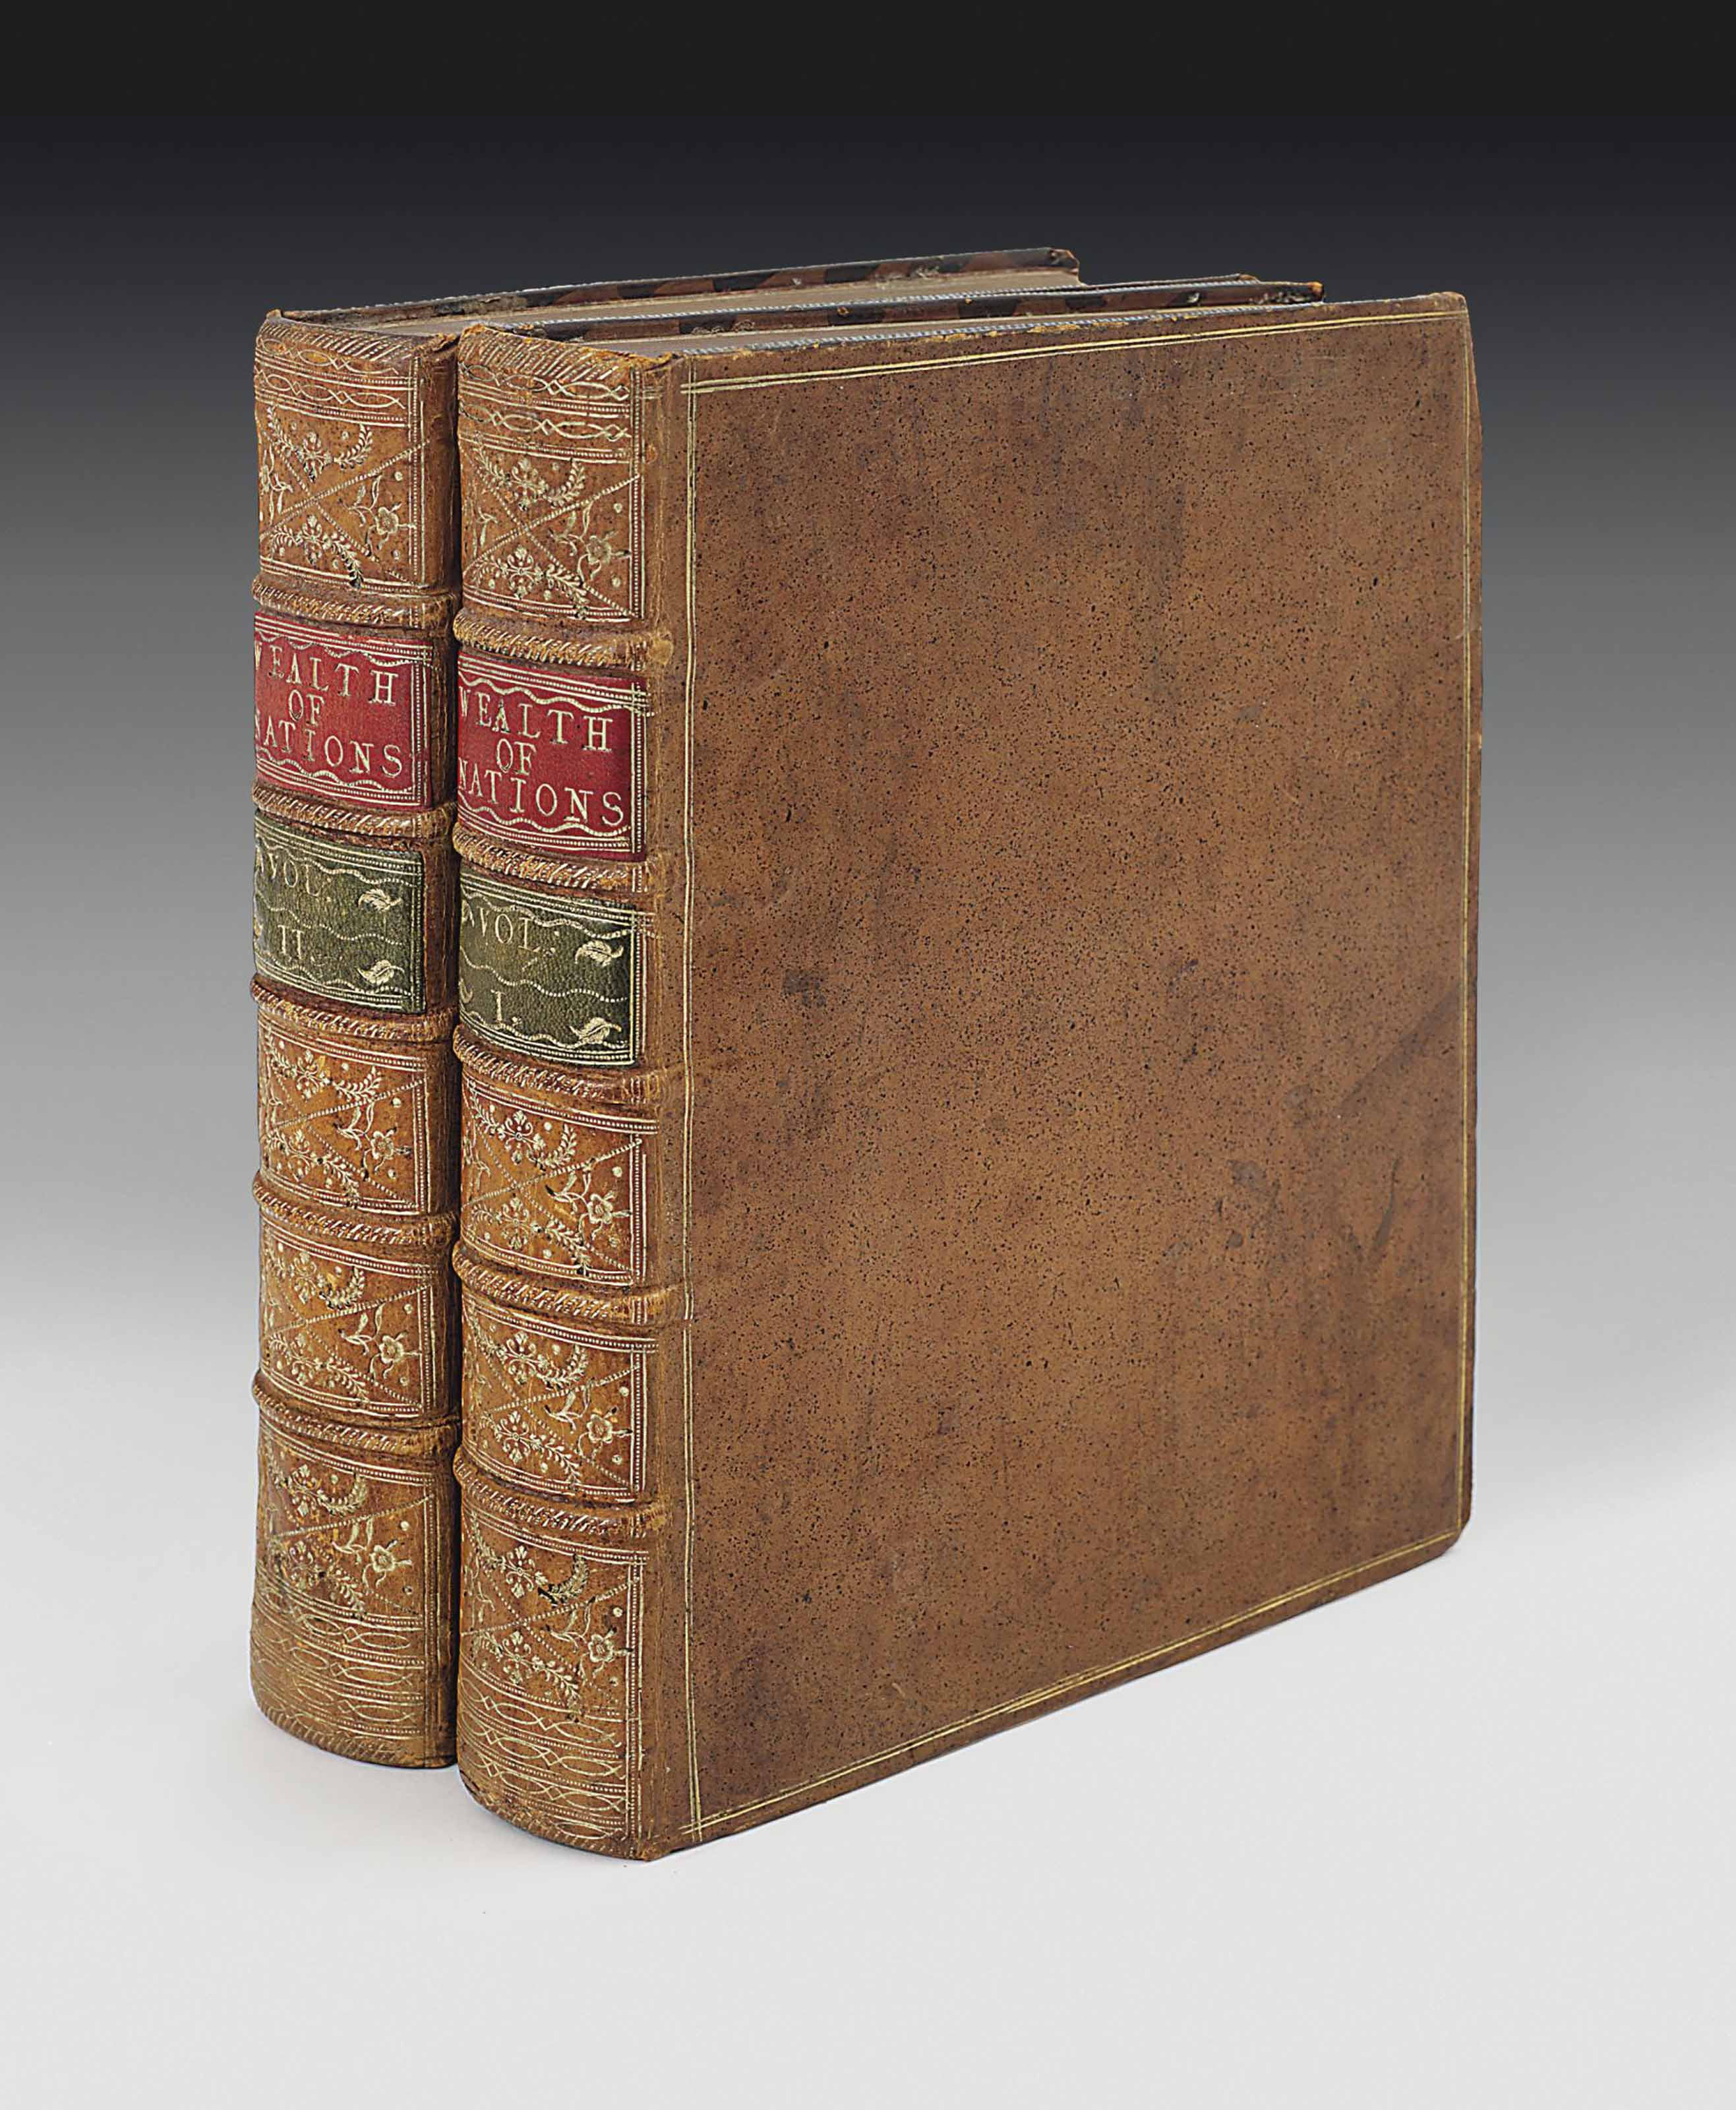 SMITH, Adam (1723-90). An Inquiry into the Nature and Causes of the Wealth of Nations. London: for W. Strahan and T. Cadell, 1776.